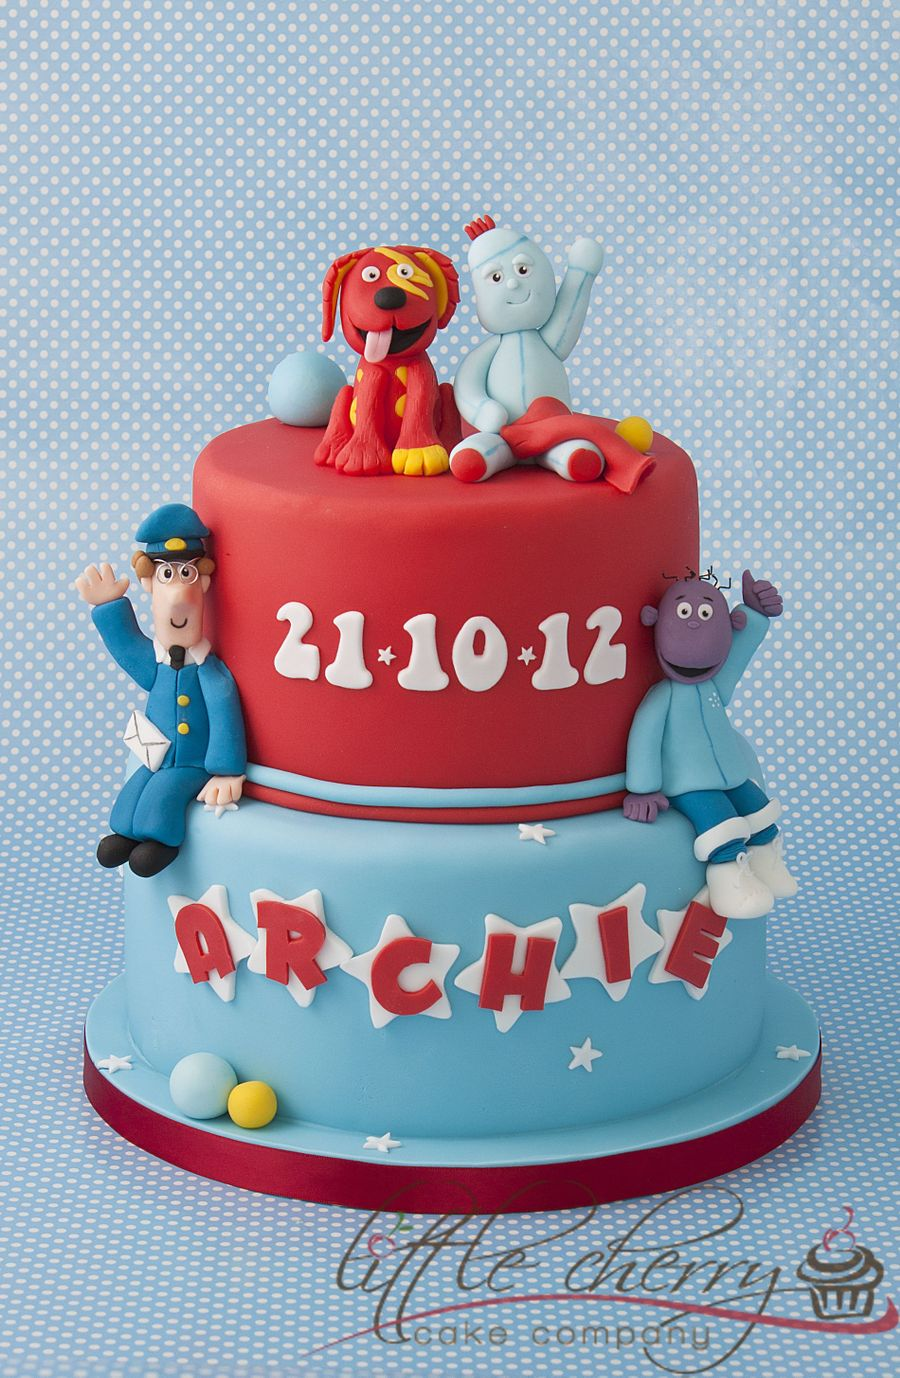 Cbeebies Cake  on Cake Central